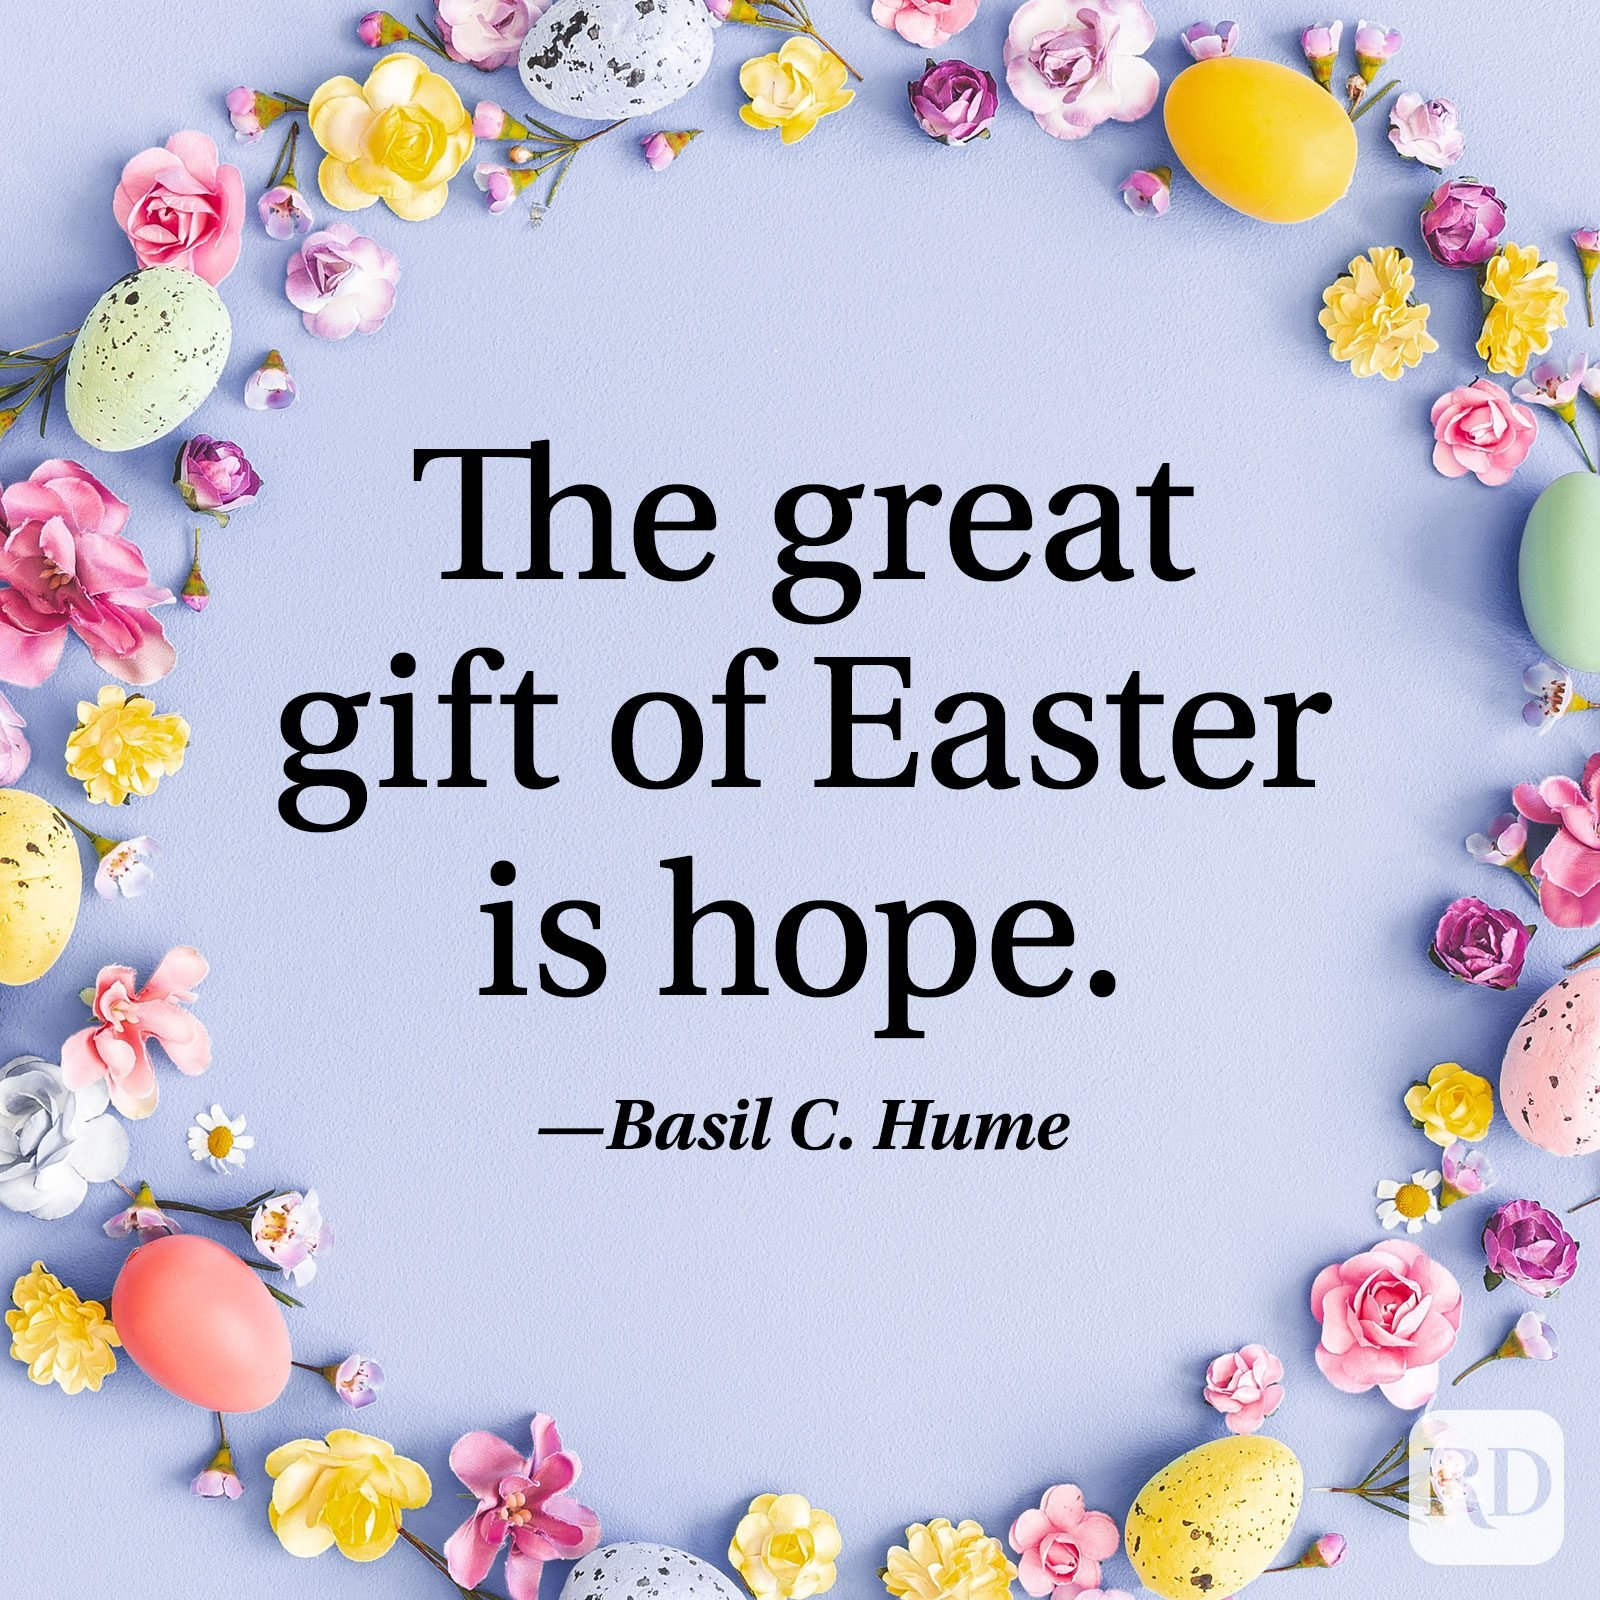 """The great gift of Easter is hope."" — Basil C. Hume"